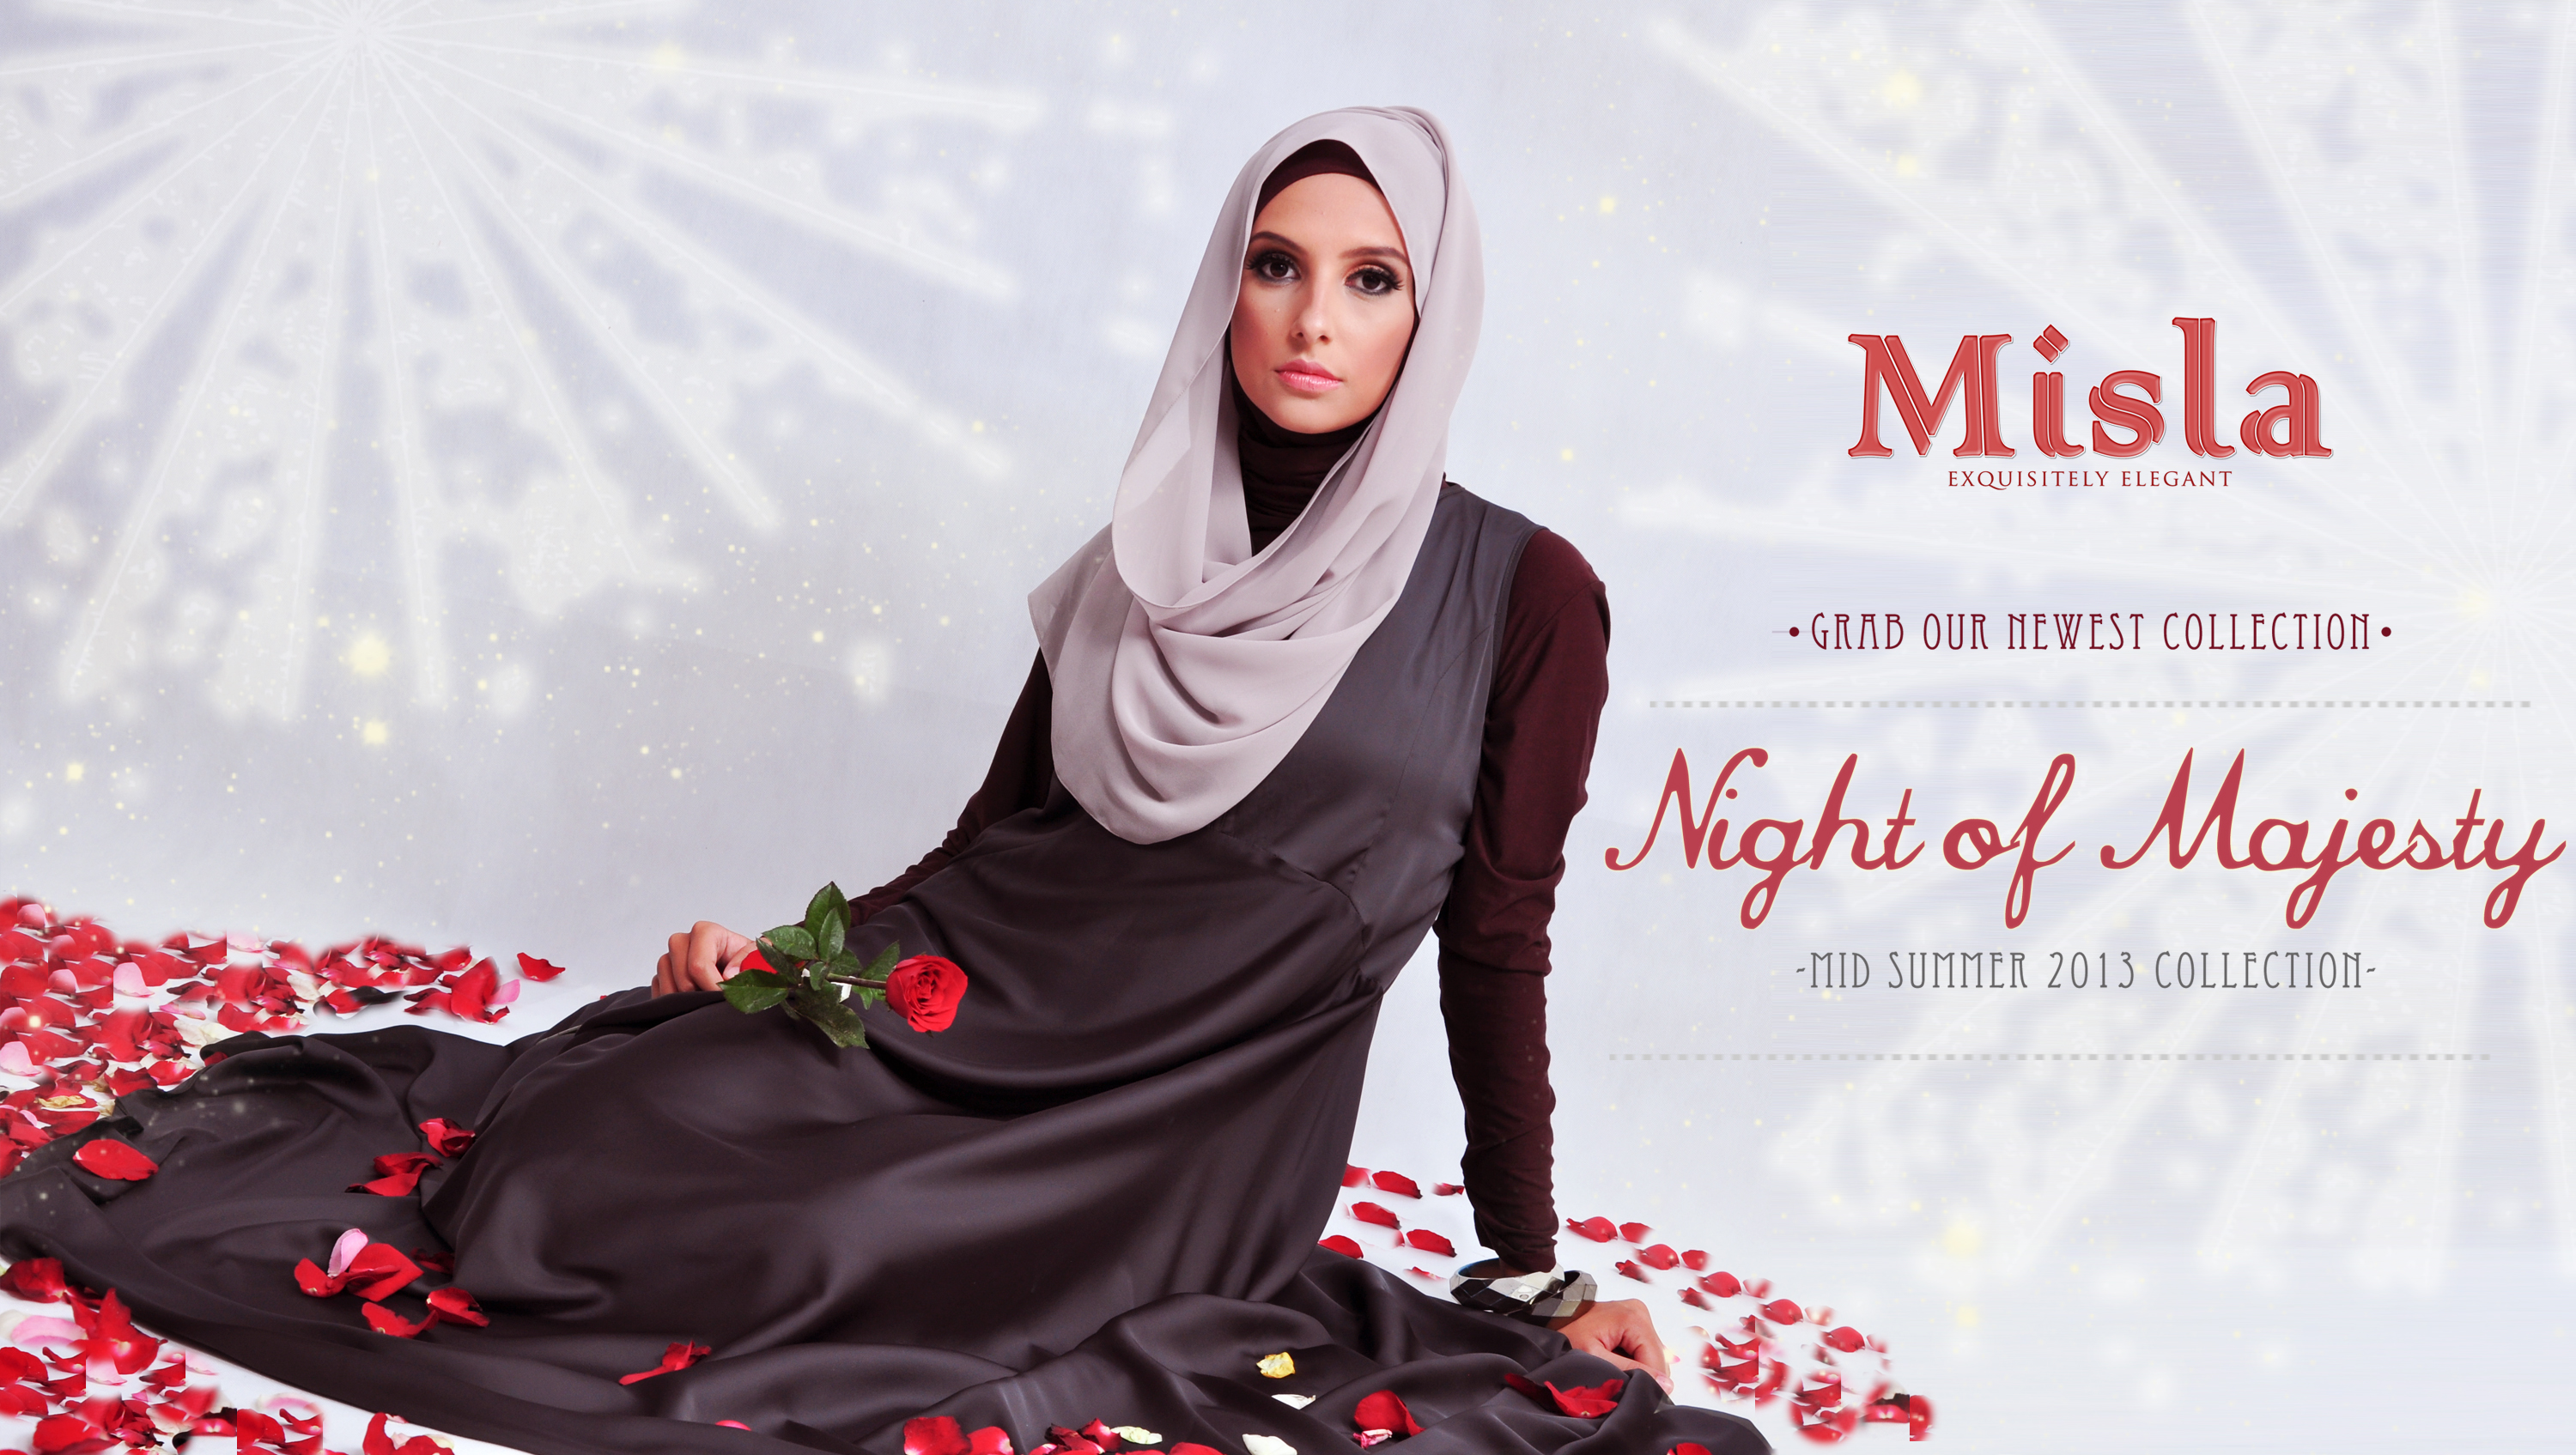 nom-lookbook-5-3 MISLA at Indonesia Islamic Fashion Fair 2013